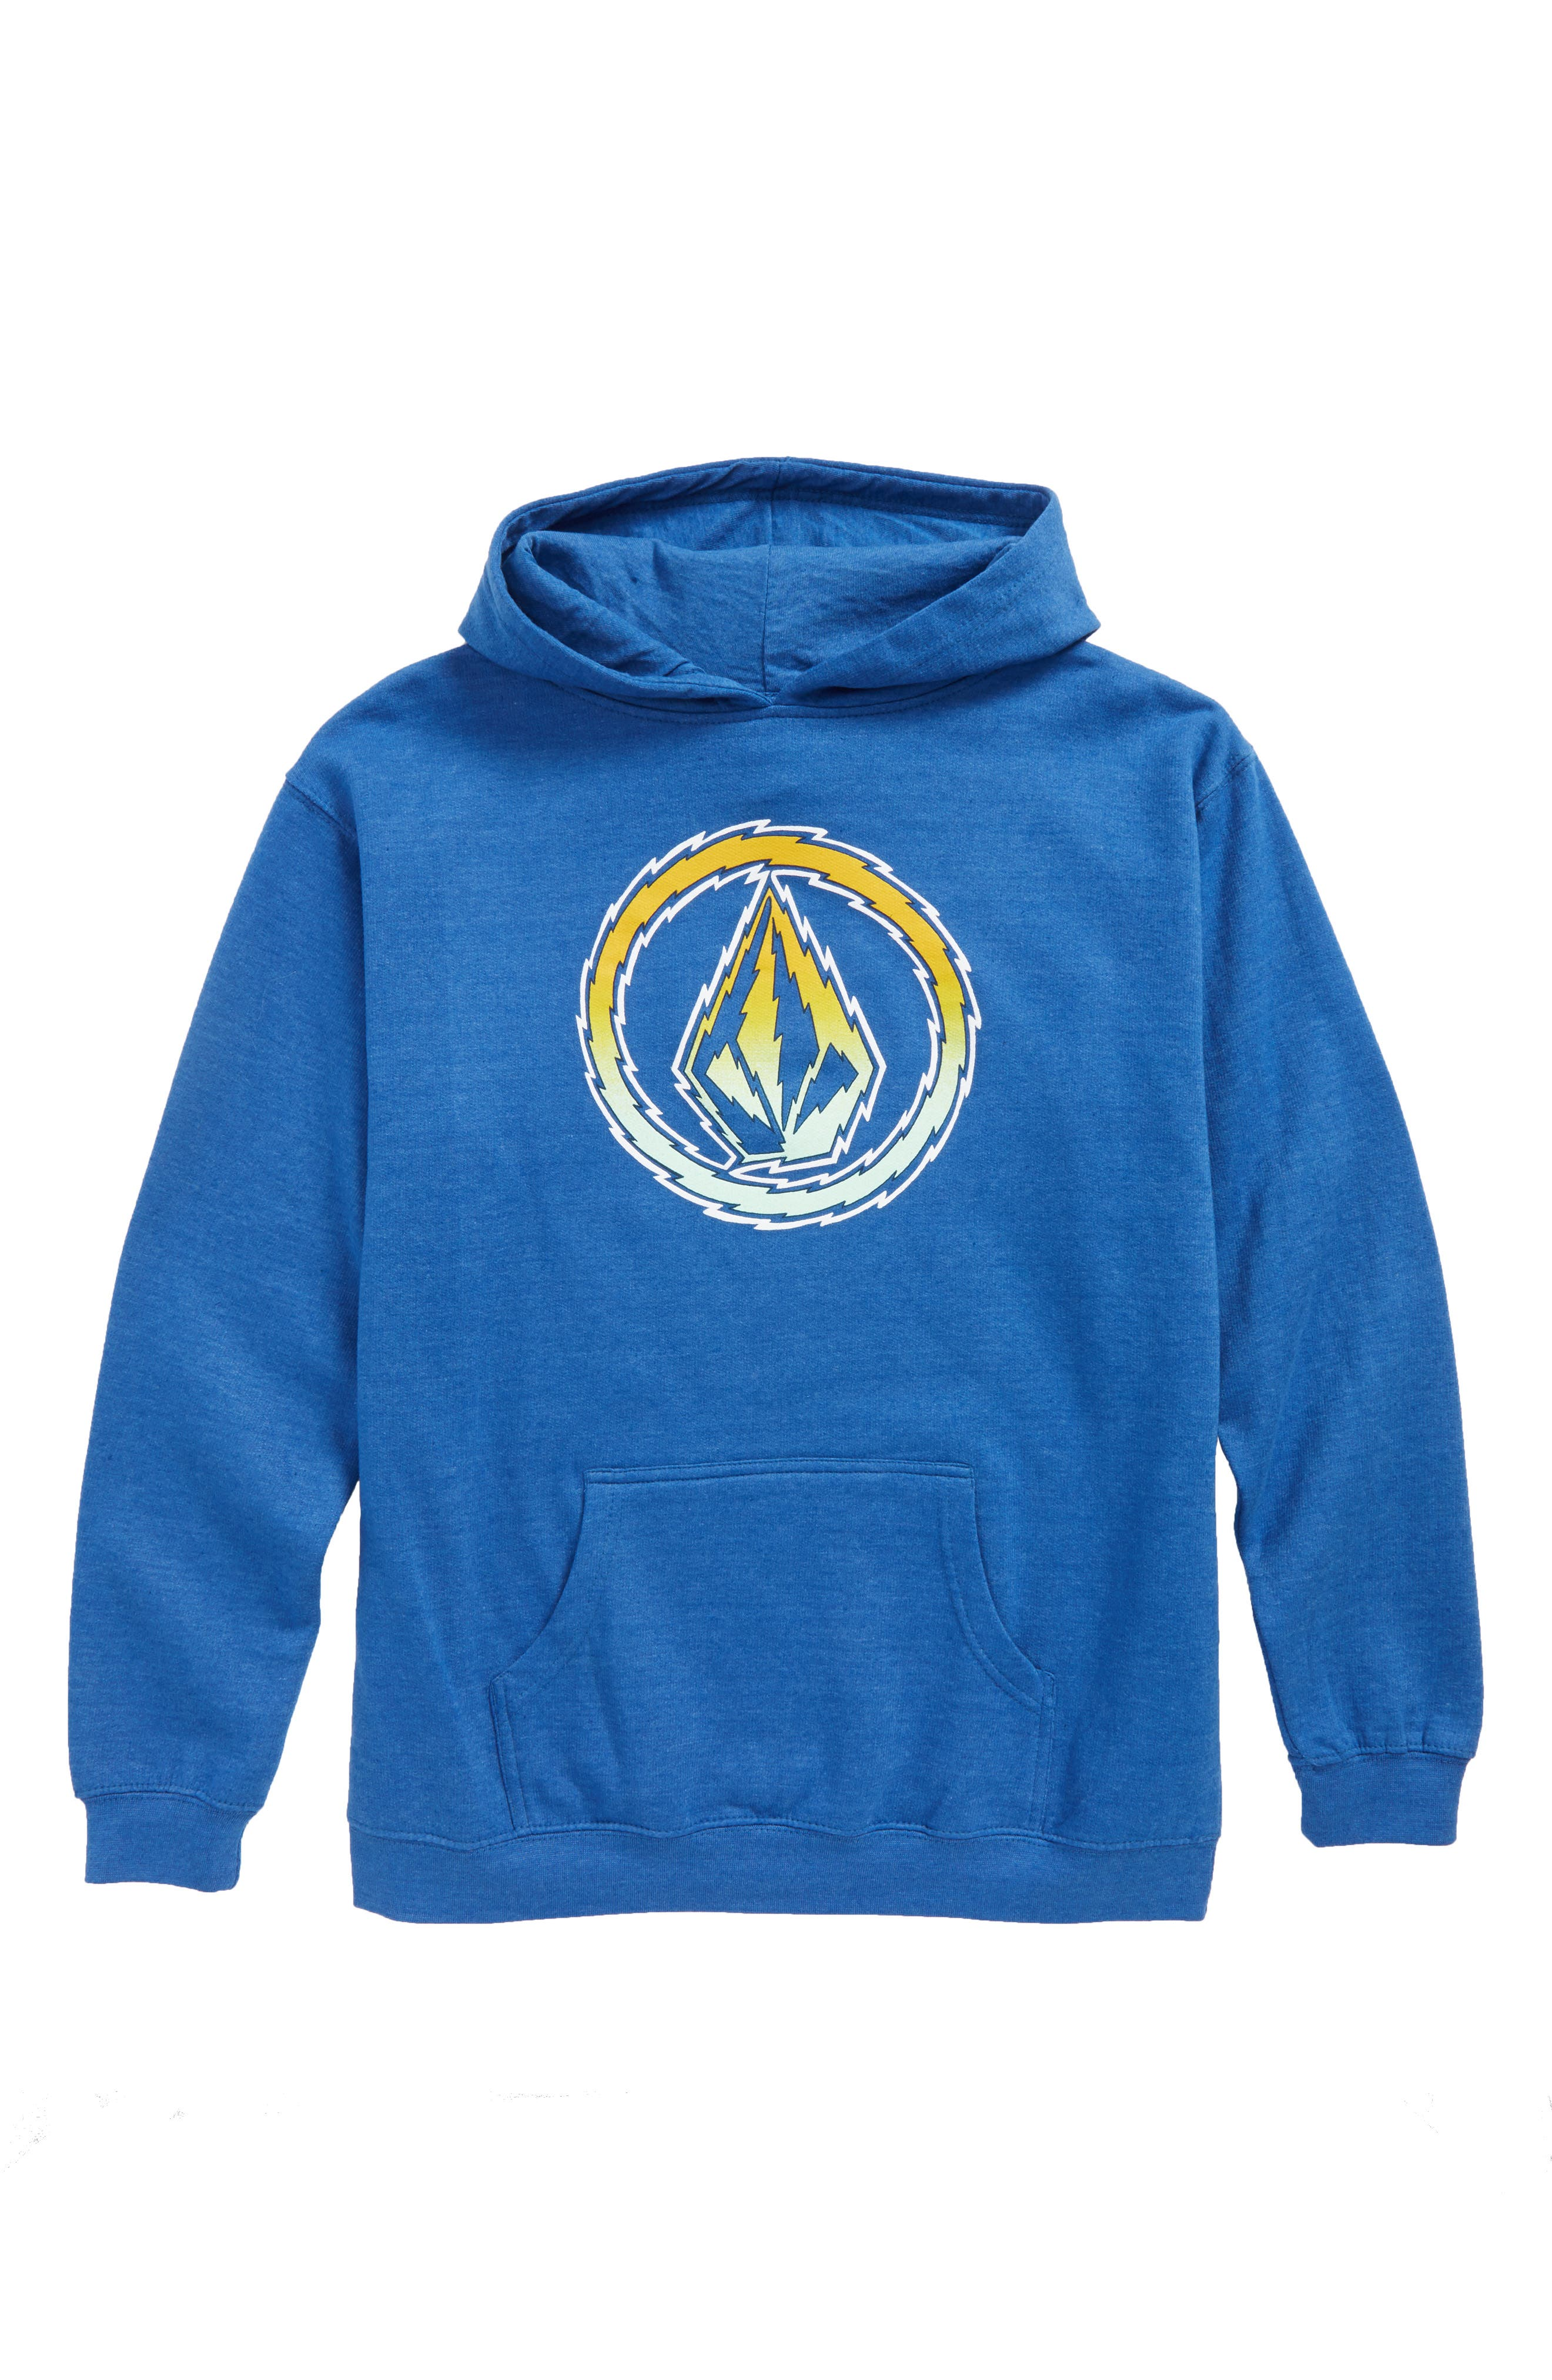 Logo Graphic Hoodie,                             Main thumbnail 1, color,                             407